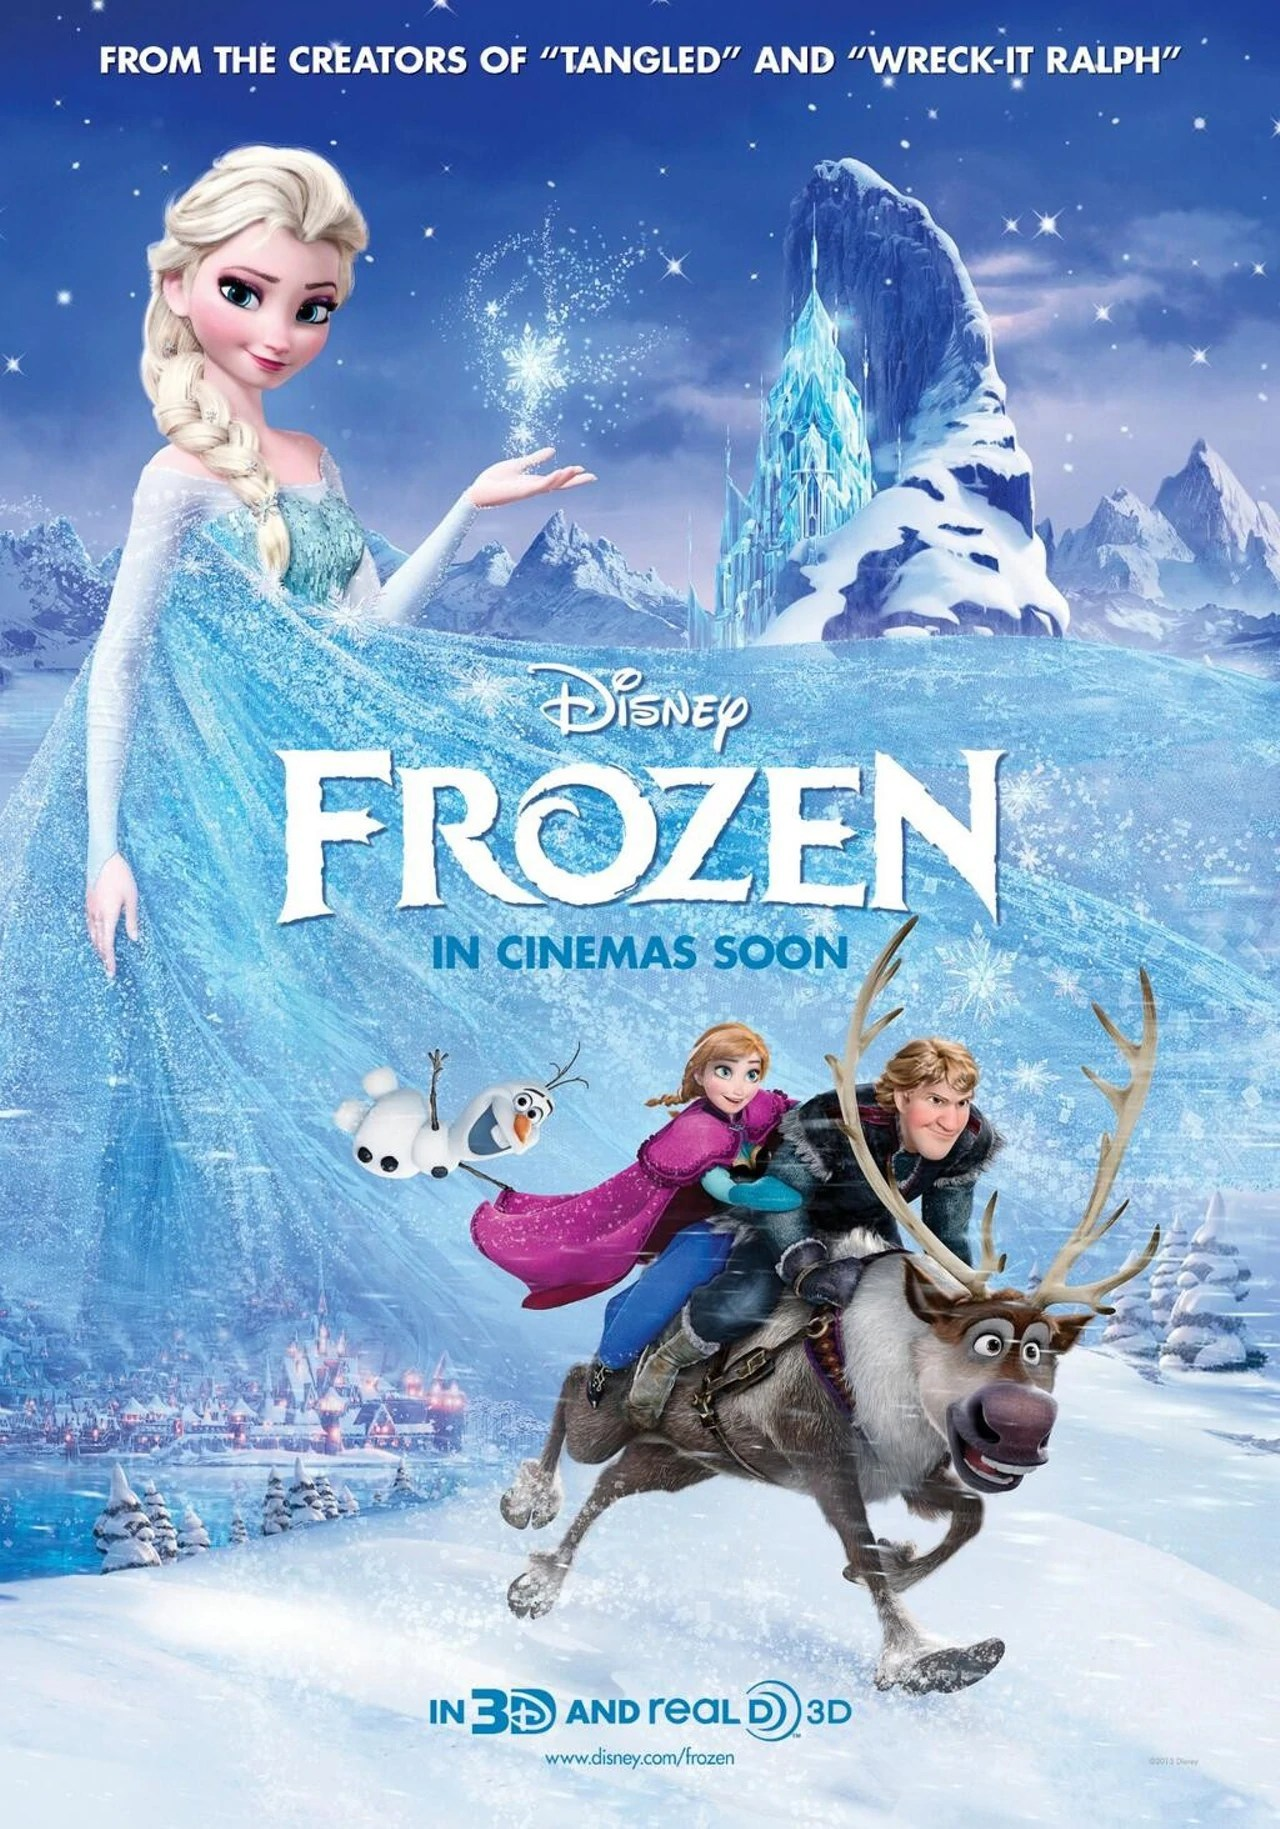 https://i1.wp.com/static3.wikia.nocookie.net/__cb20131002122860/disney/images/5/58/Frozen-movie-poster.jpg